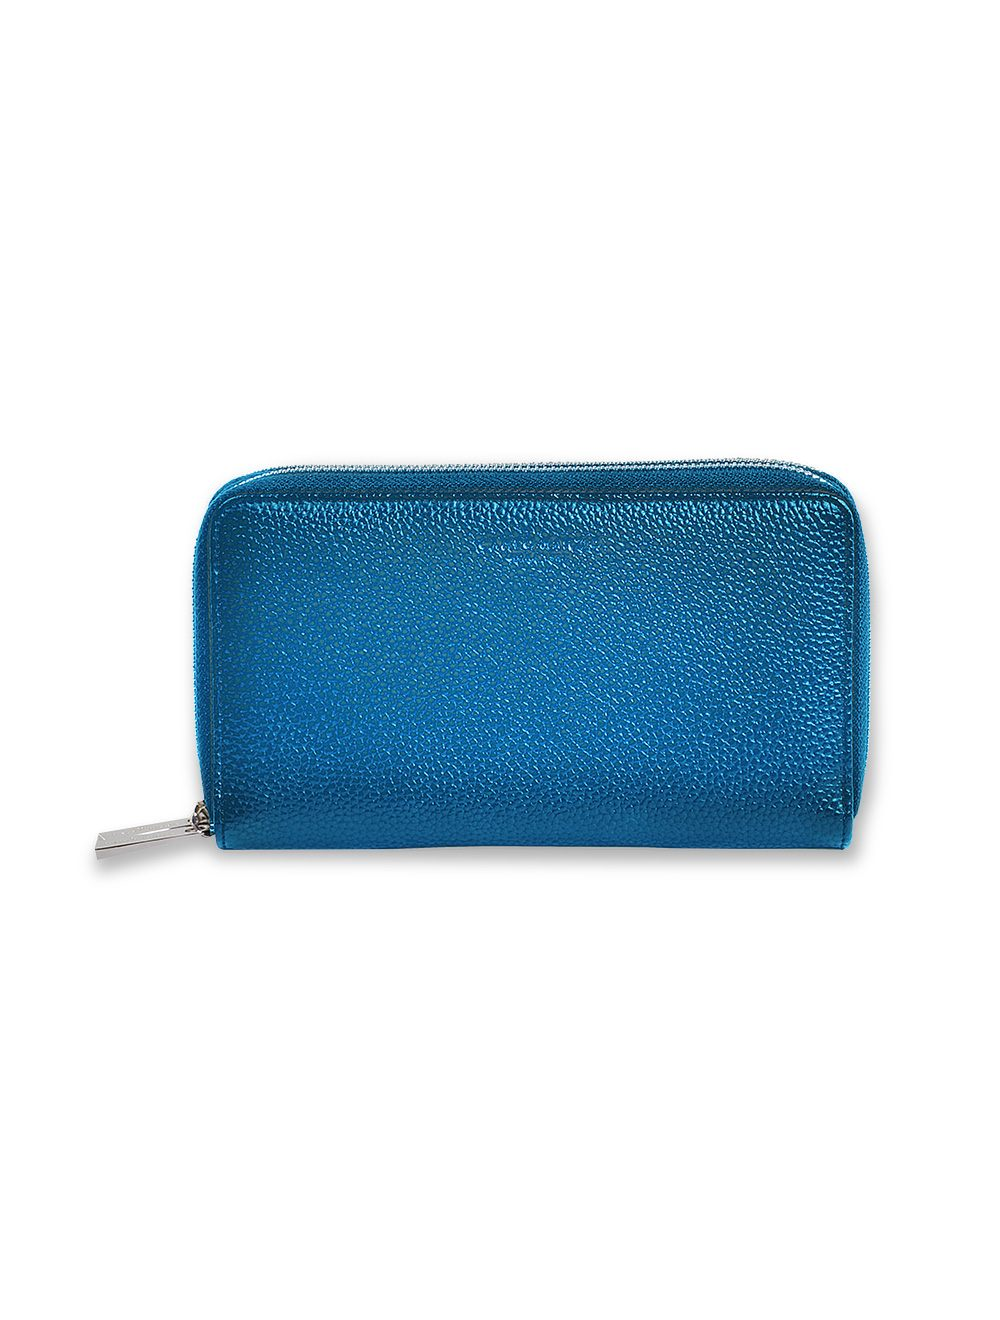 Sorbonne Wallet - Turquoise